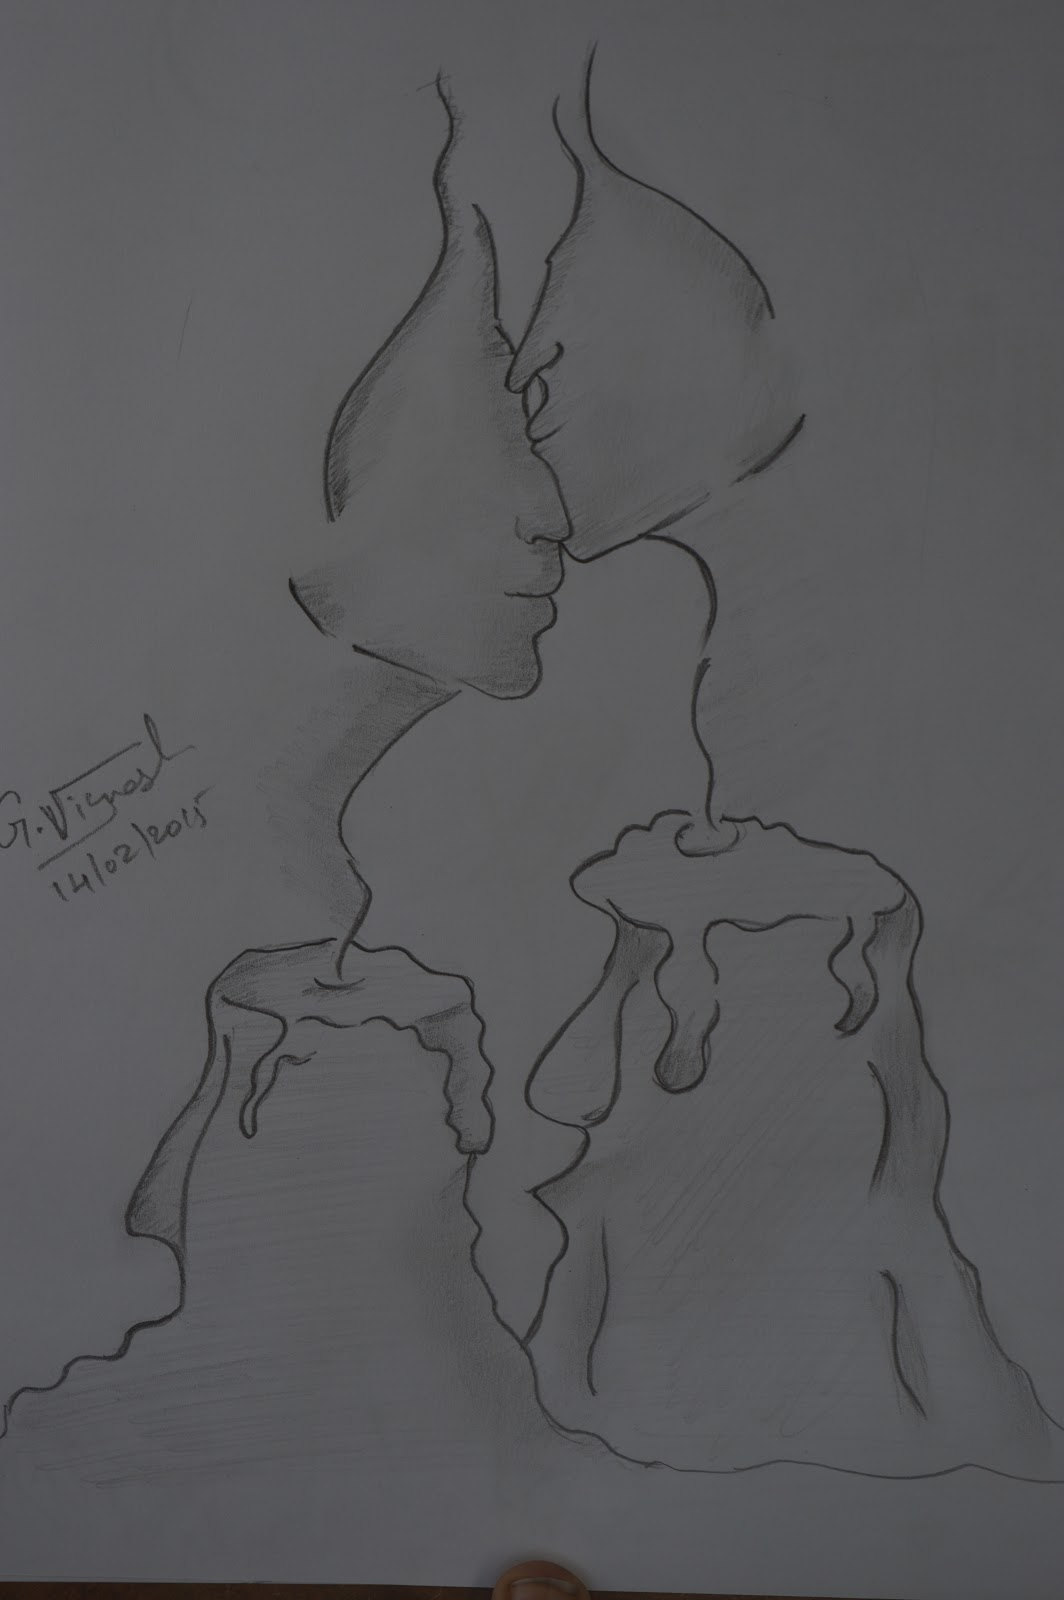 Candle feelings pencil sketch